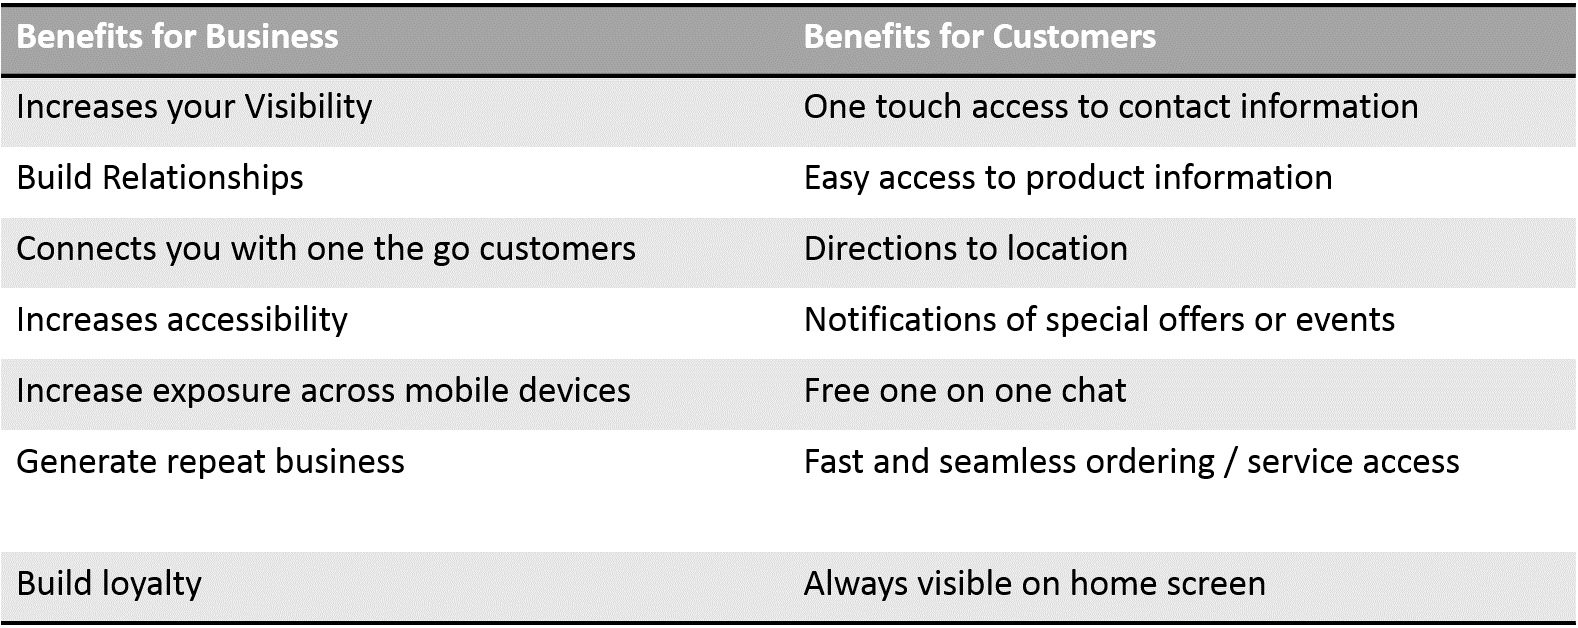 benefit both the business and the customer